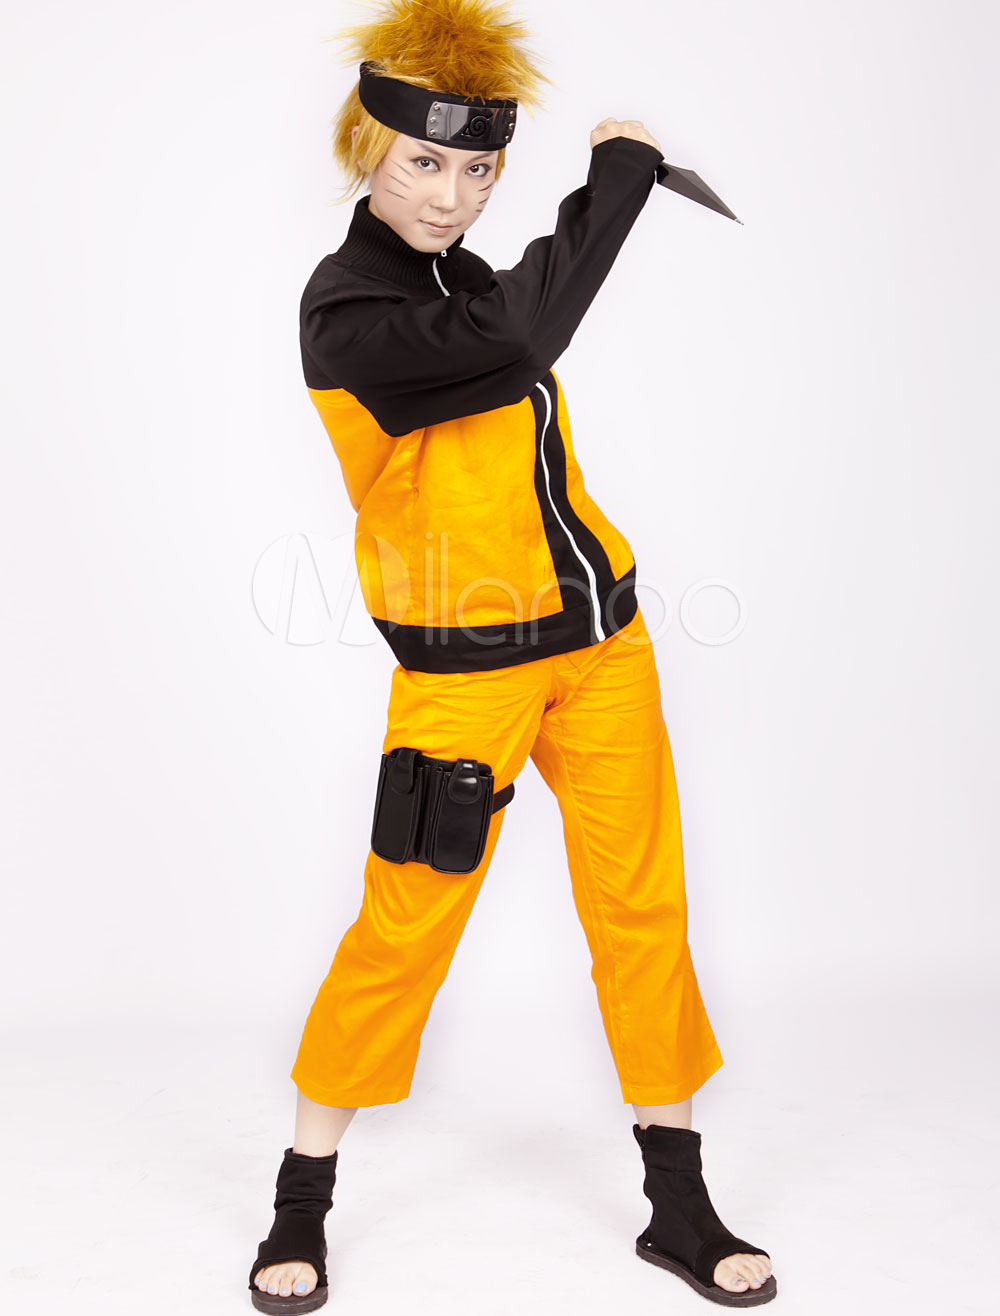 Buy Anime Naruto Shippuden Uzumaki Naruto Halloween Cosplay Costume for $34.99 in Milanoo store